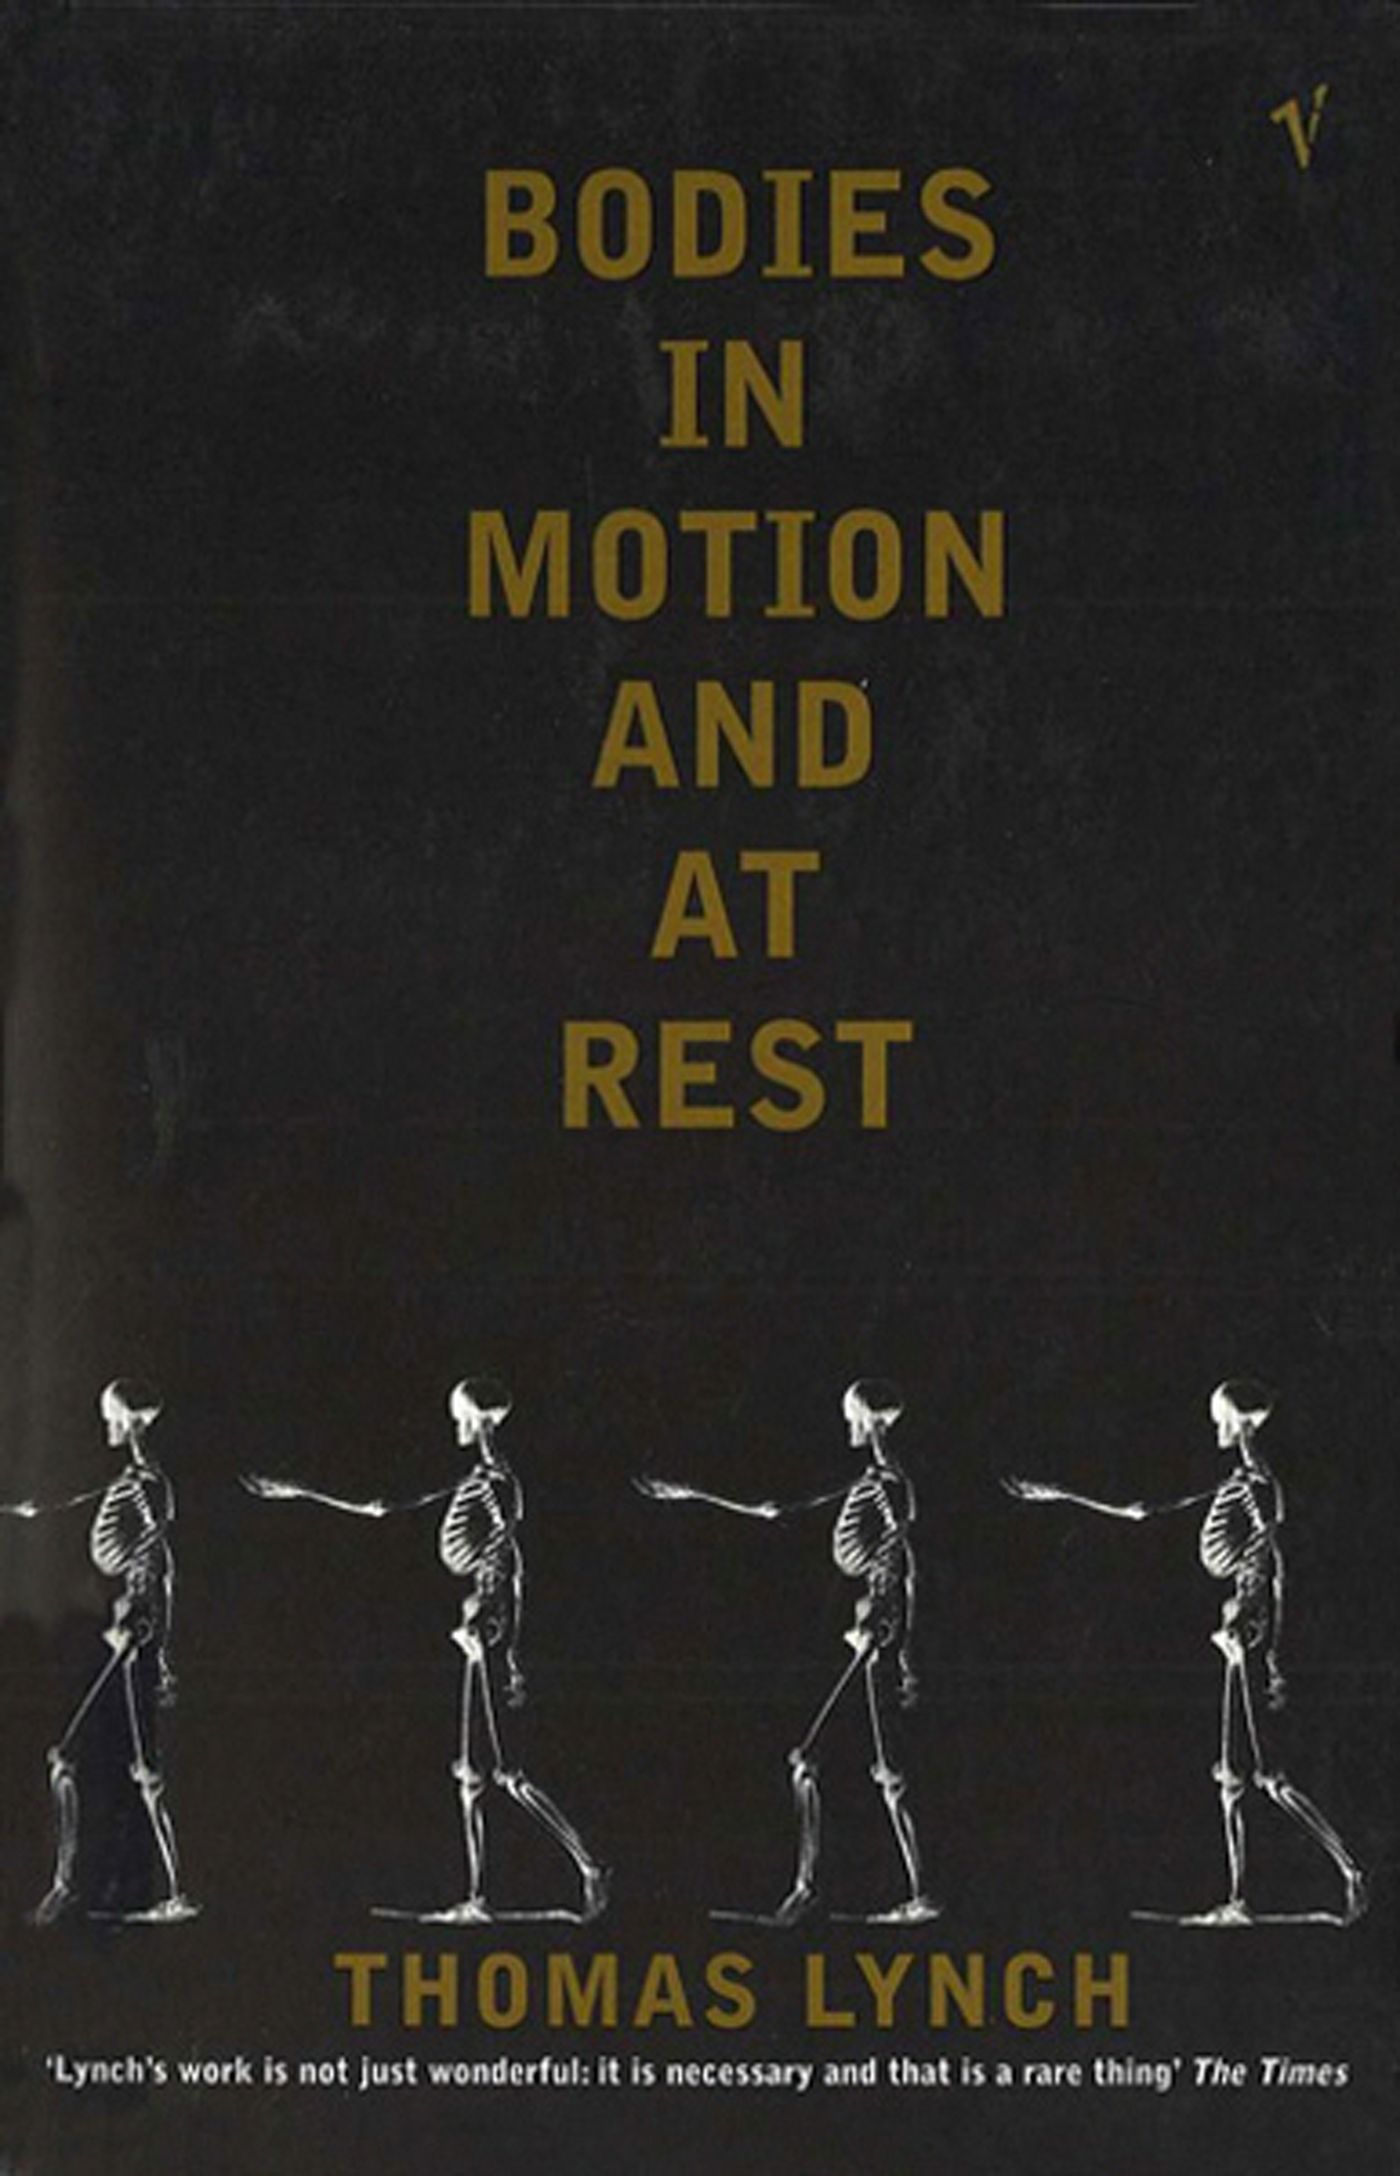 bodies in motion and at rest essay Bodies in motion and at rest: essays thomas lynch no preview available - 2001 bodies in motion and at rest: essays thomas lynch no preview available - 2000.